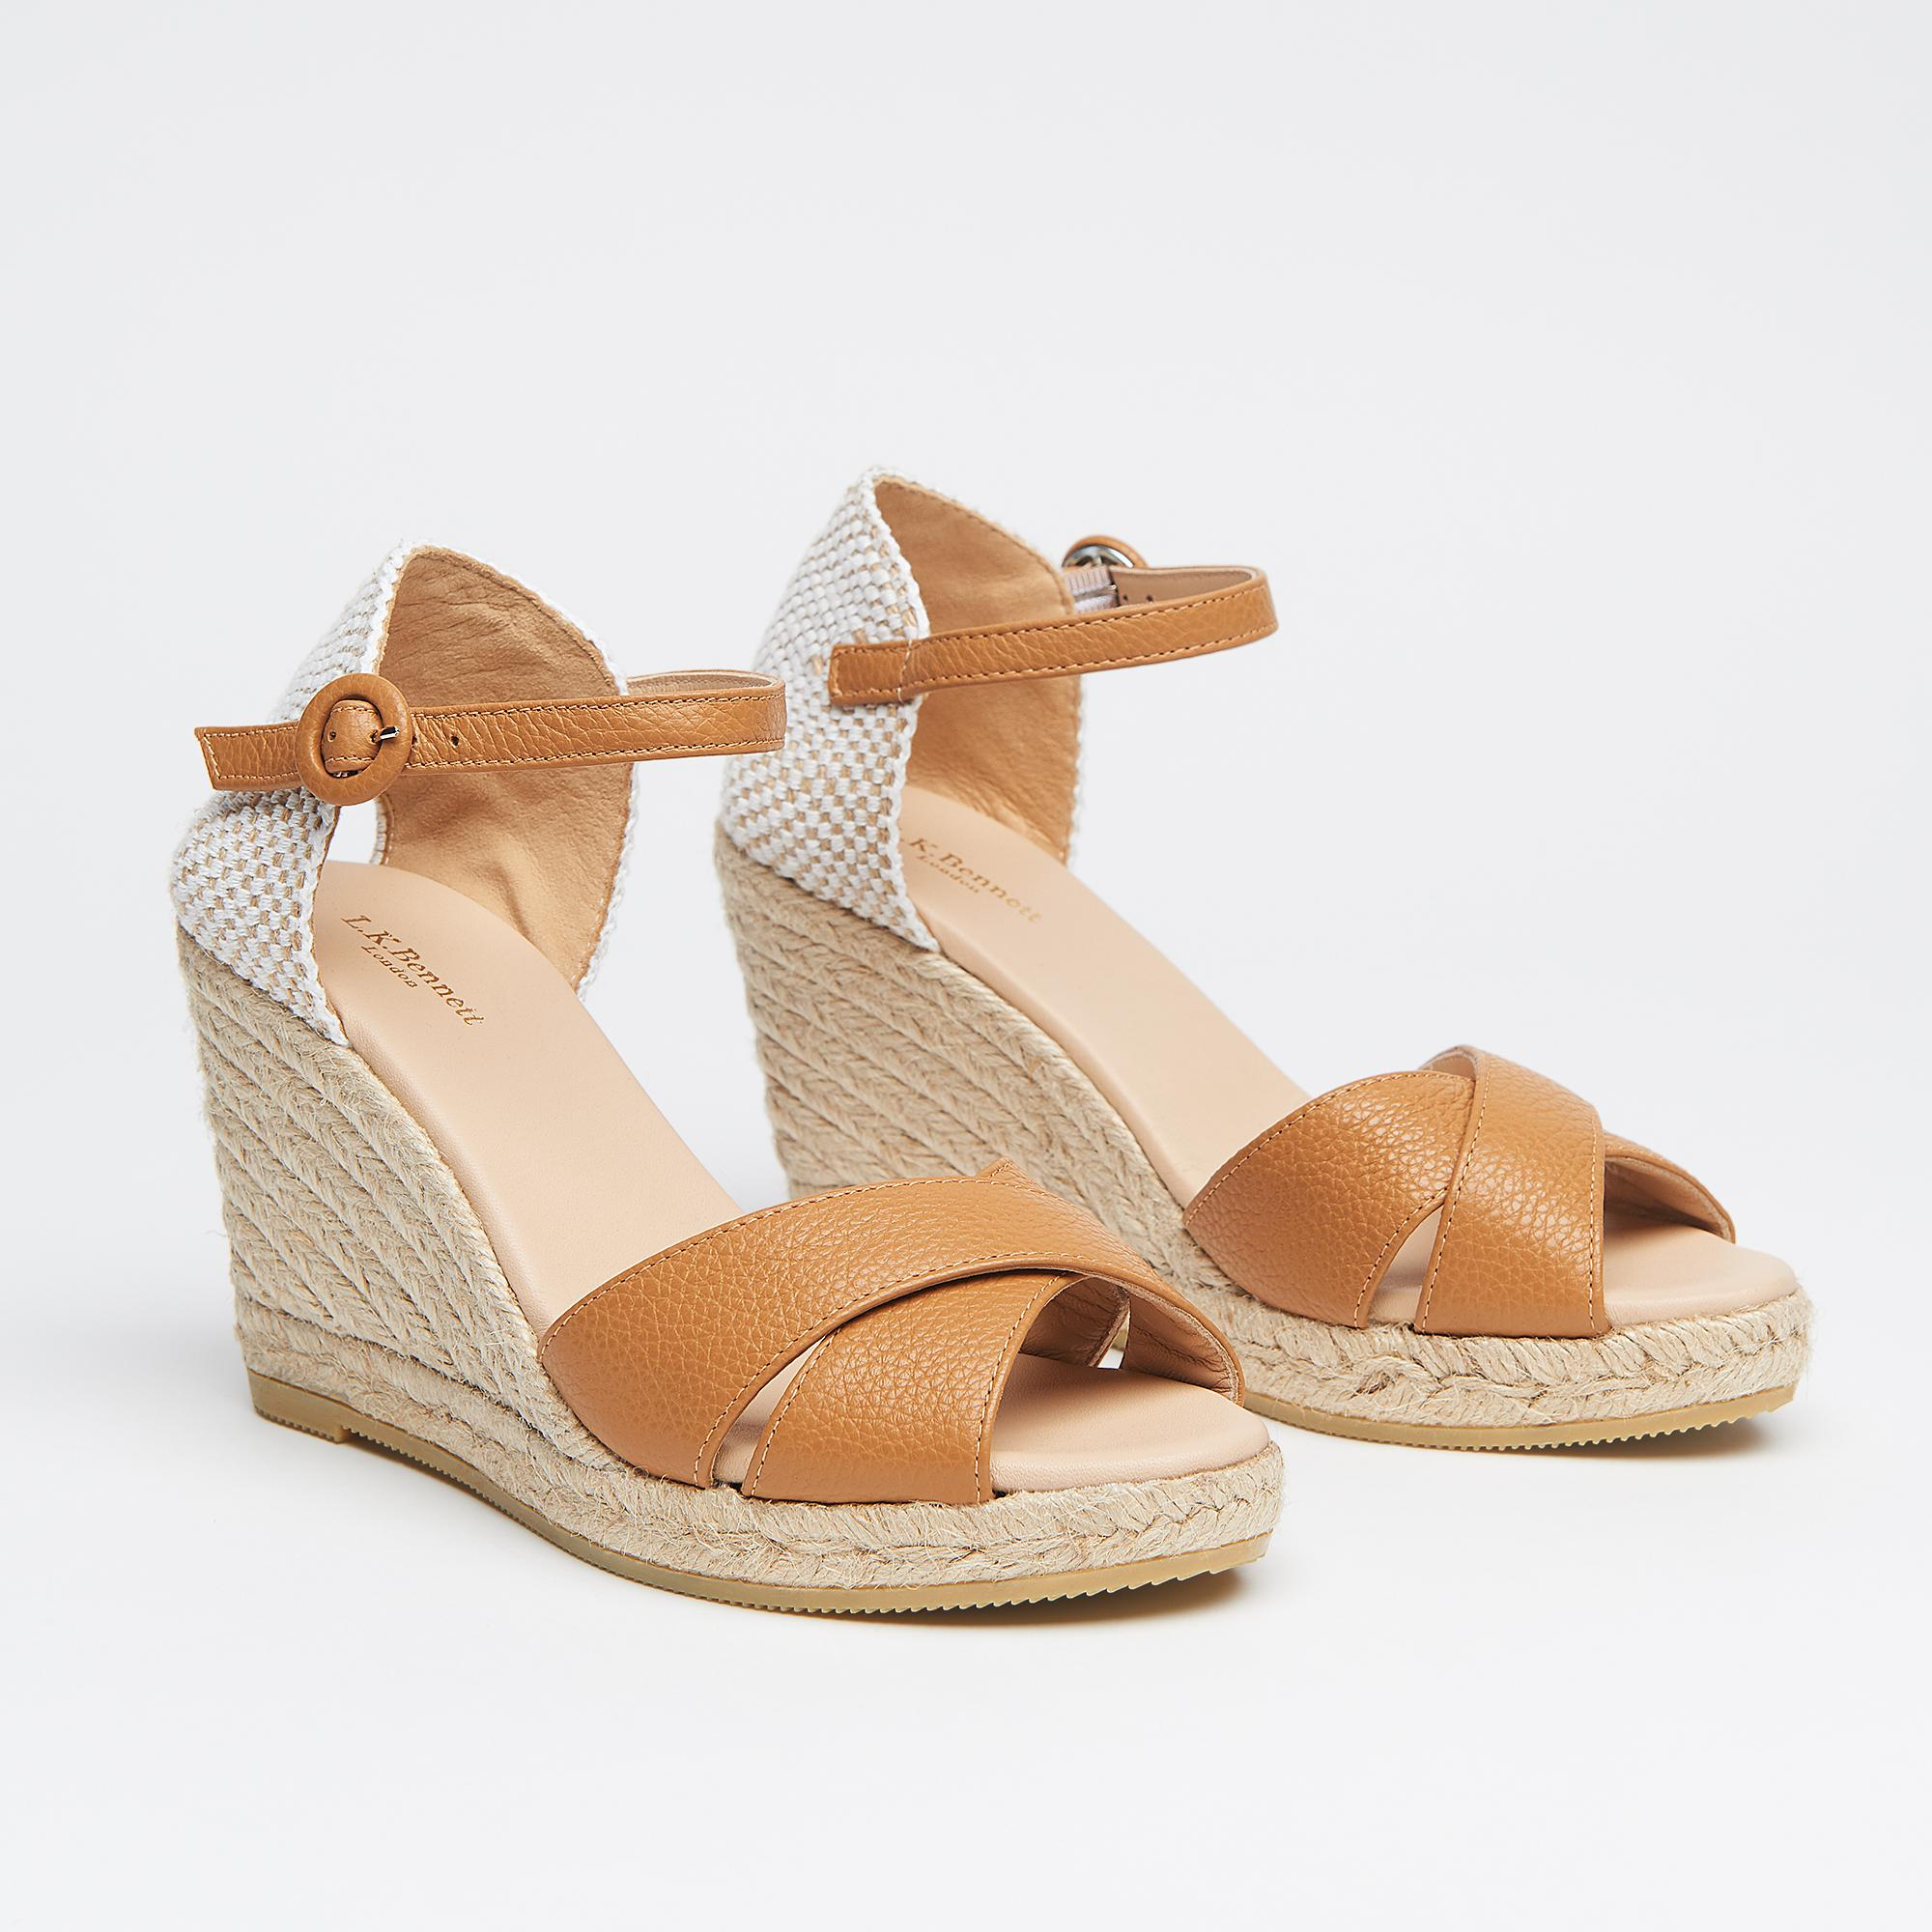 14e0a9caf19 Angele Tan Leather Sandals